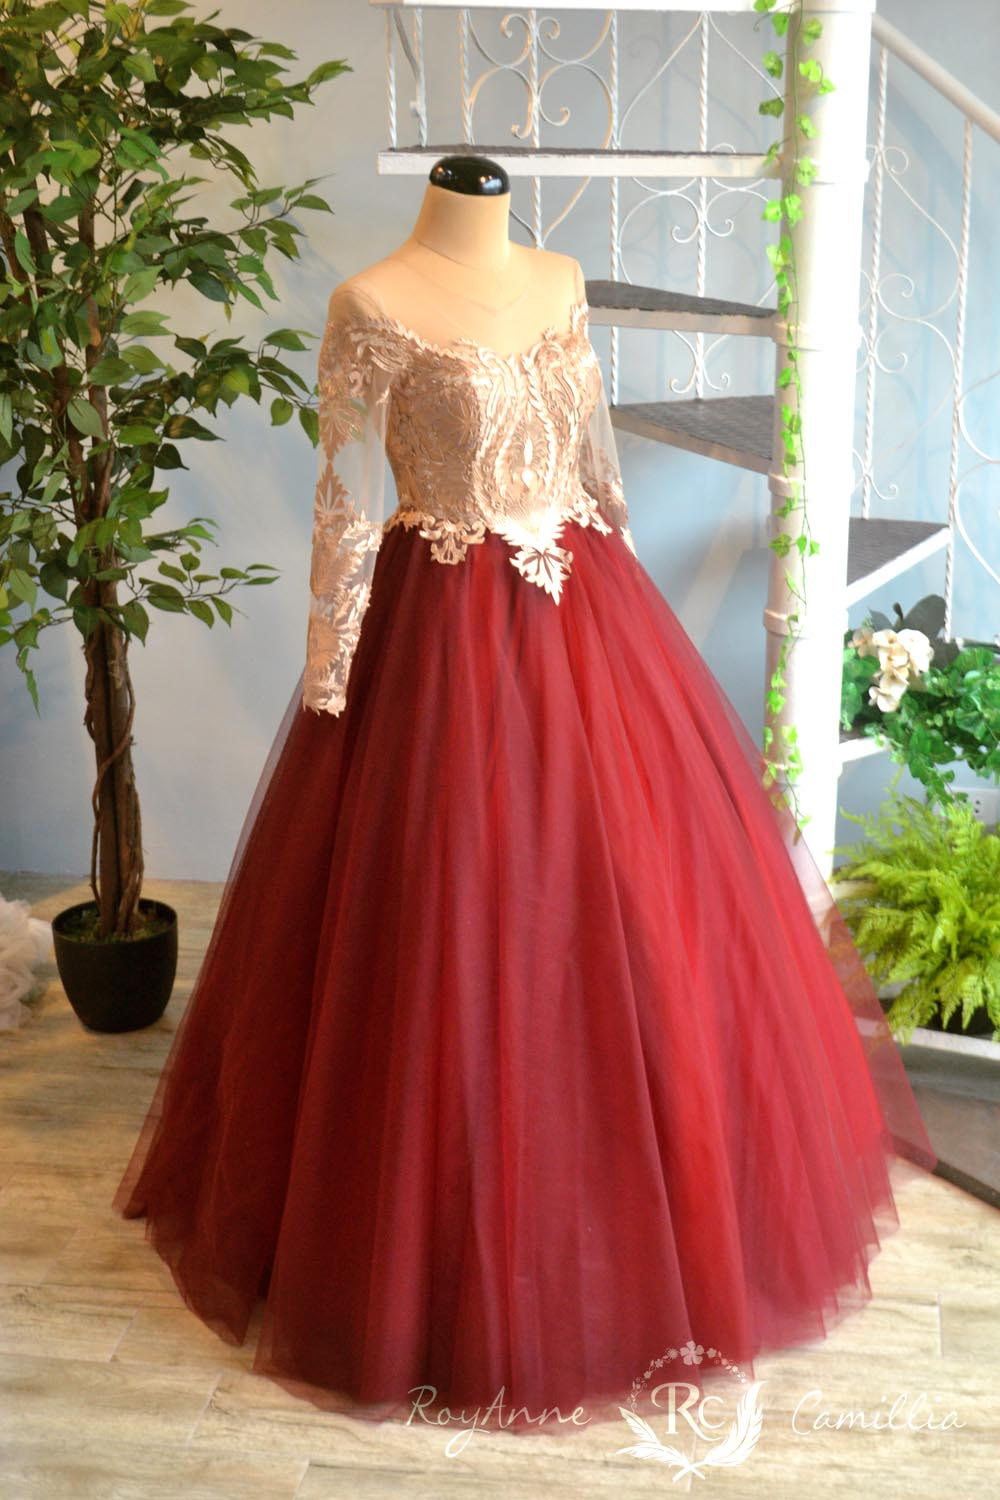 Ashley Royanne Camillia Couture Bridal Gowns And Gown Rentals In